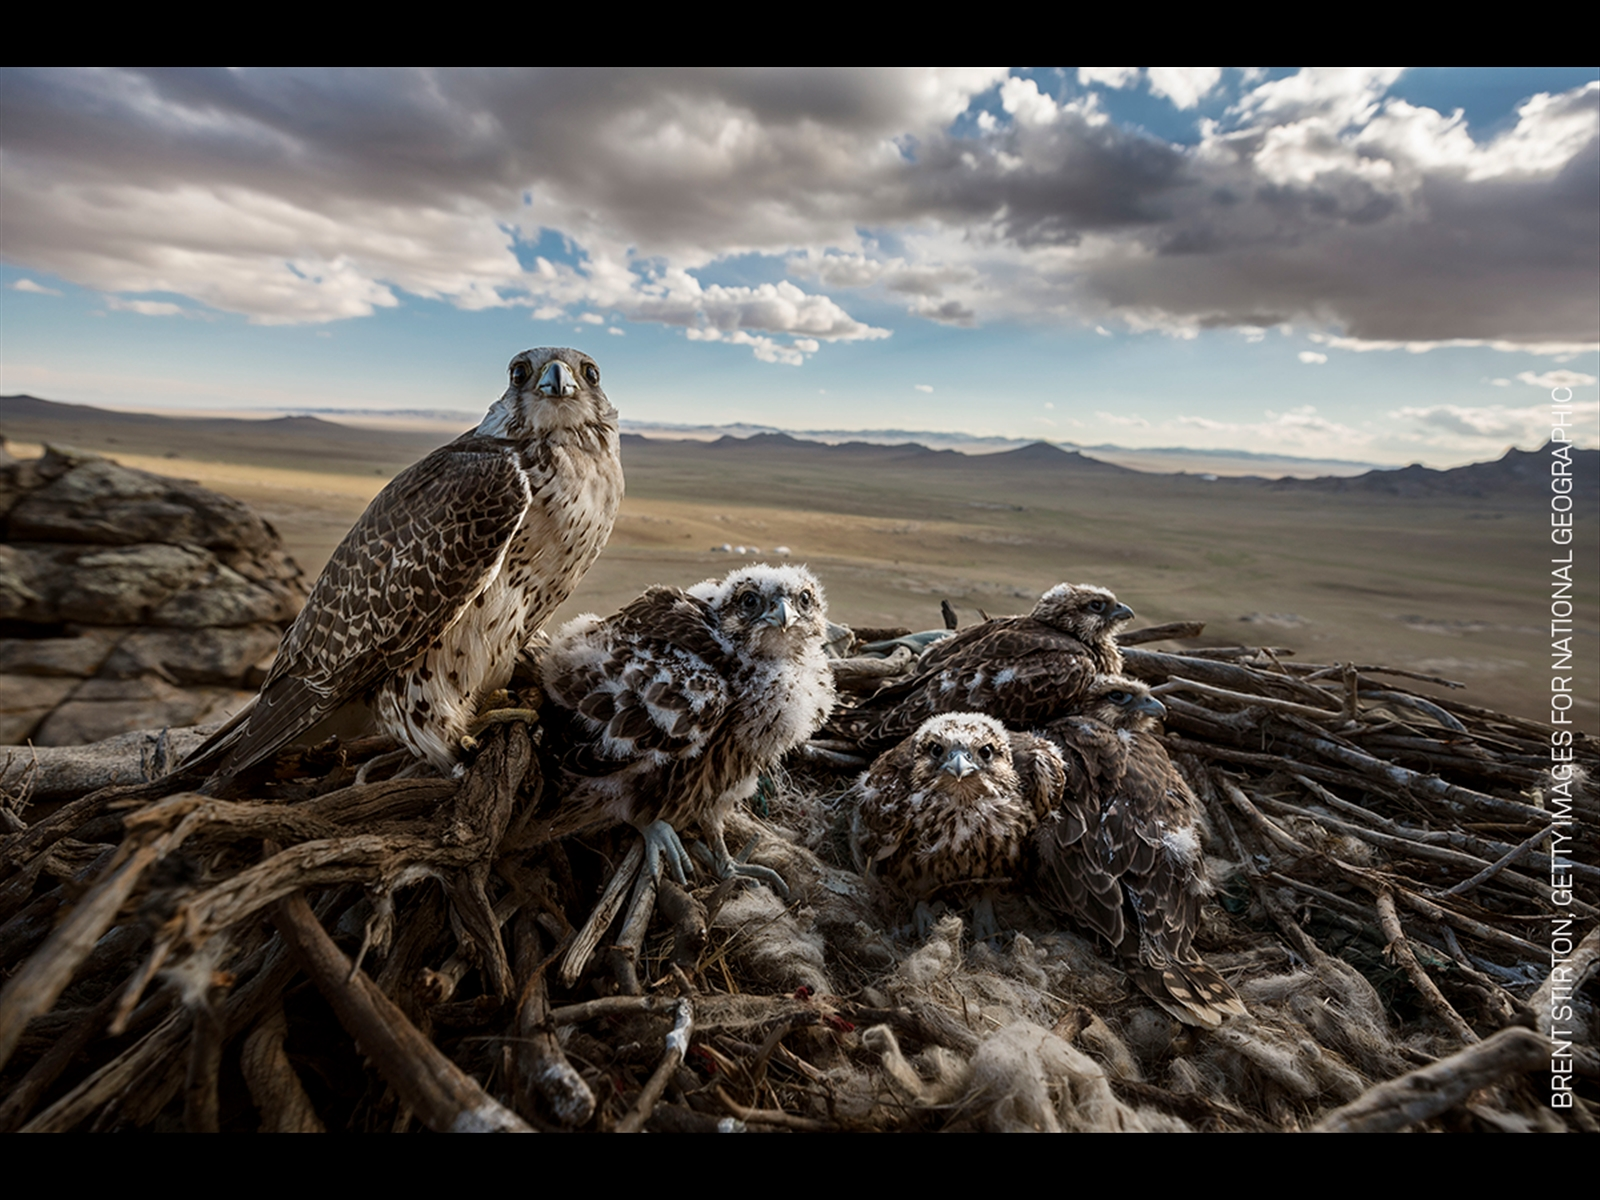 Getty Images for National Geographic Online. Nature, Stories, 1st Prize